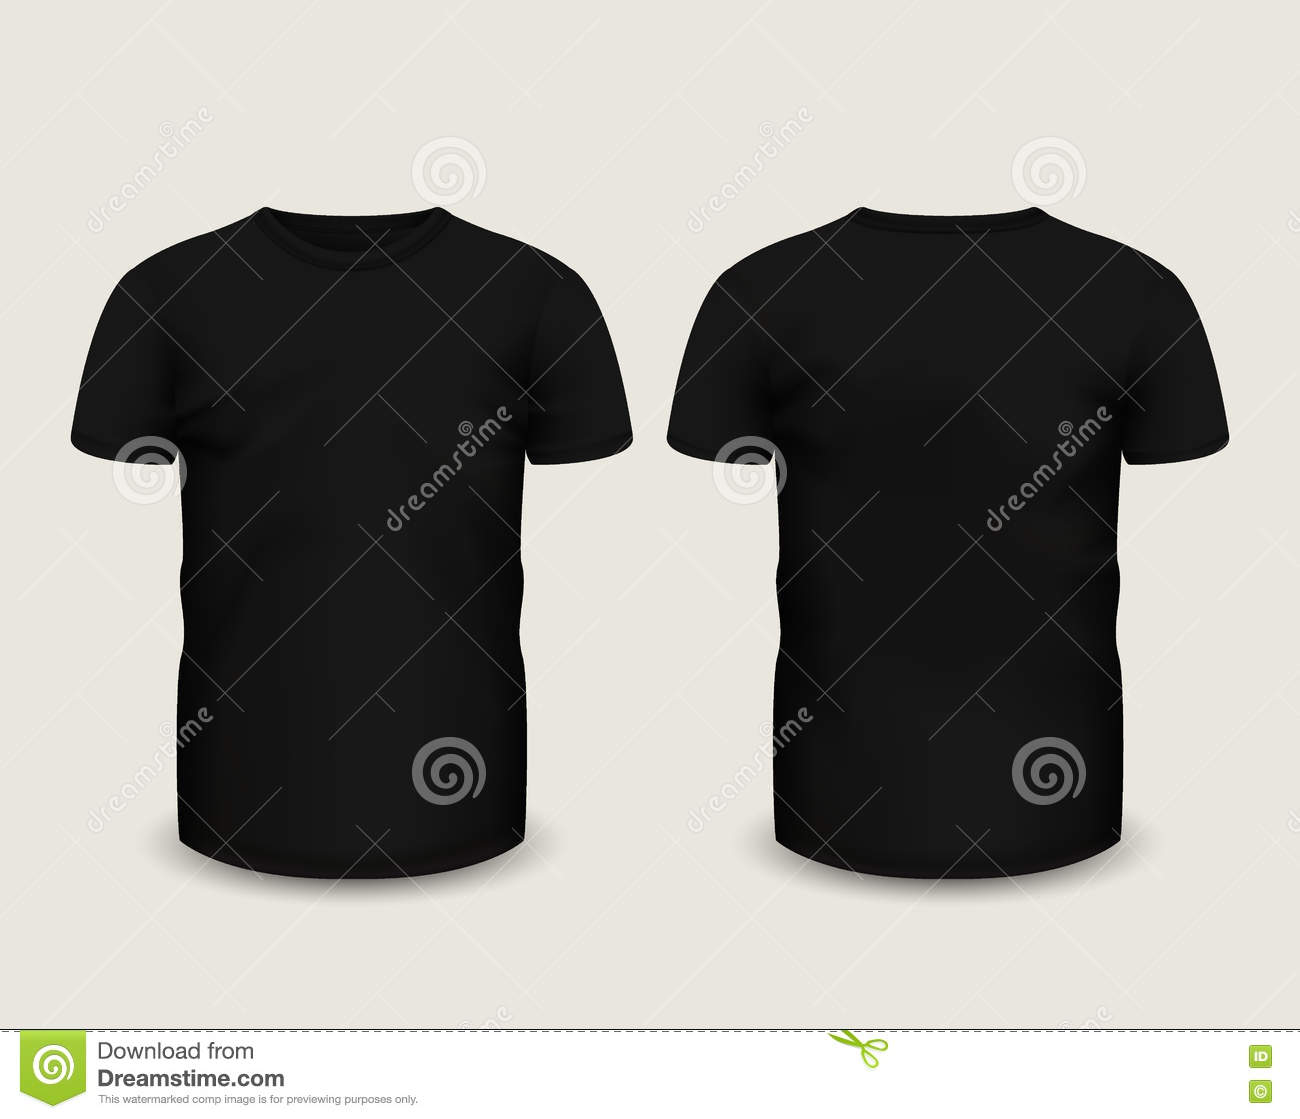 Blank black t shirt front and back - Men S Black T Shirt Short Sleeve In Front And Back Views Vector Template